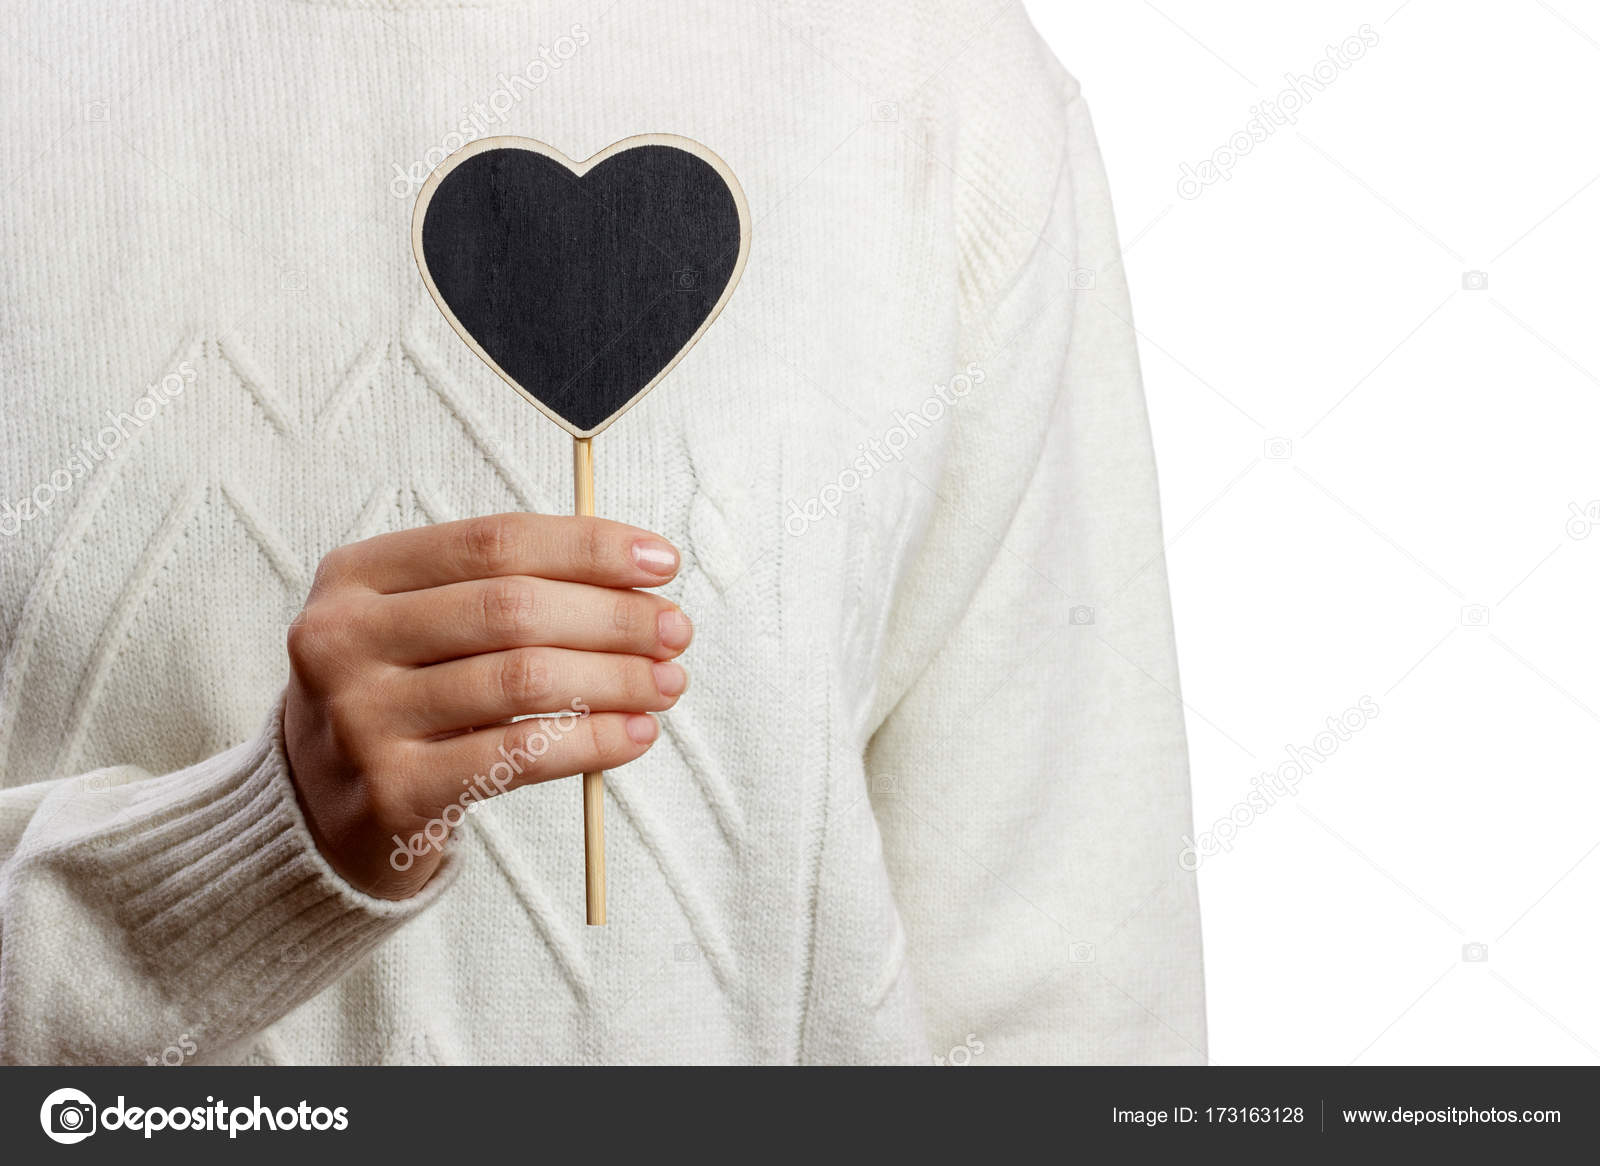 Girl Holding Black Heart Board On White Background Valentines Day Stock Photo C Snegok1967 173163128